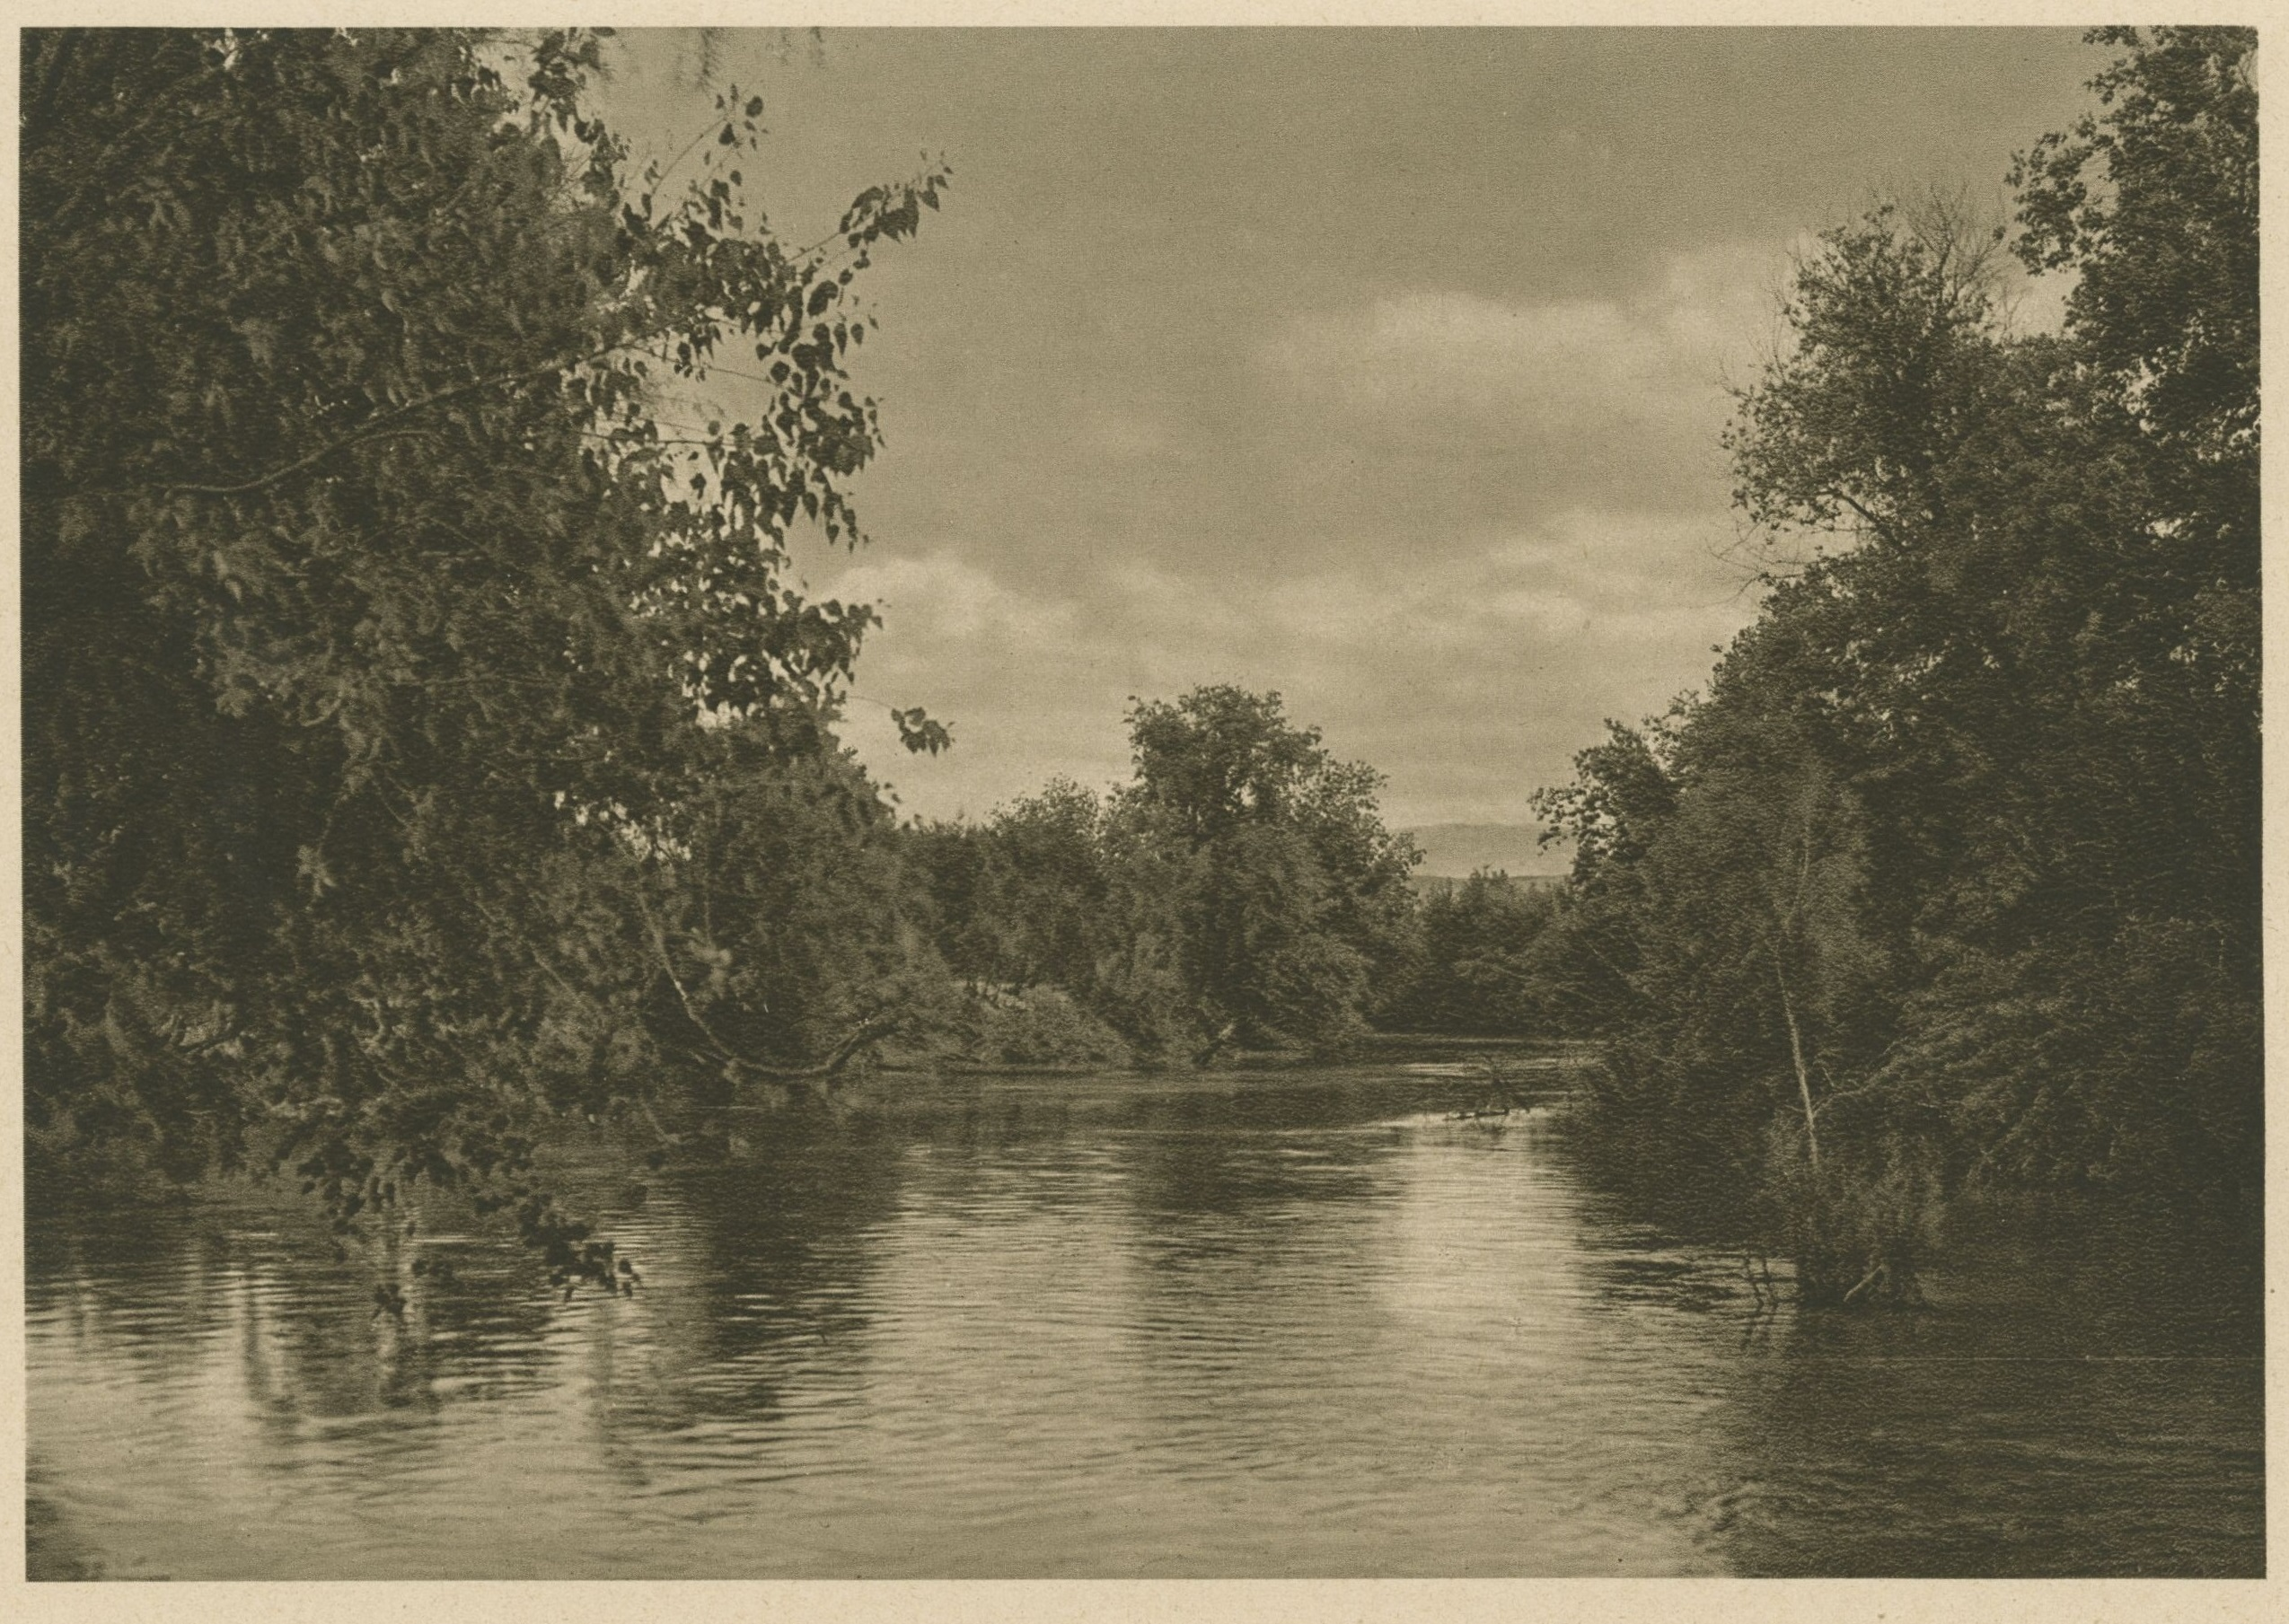 Photo of a river